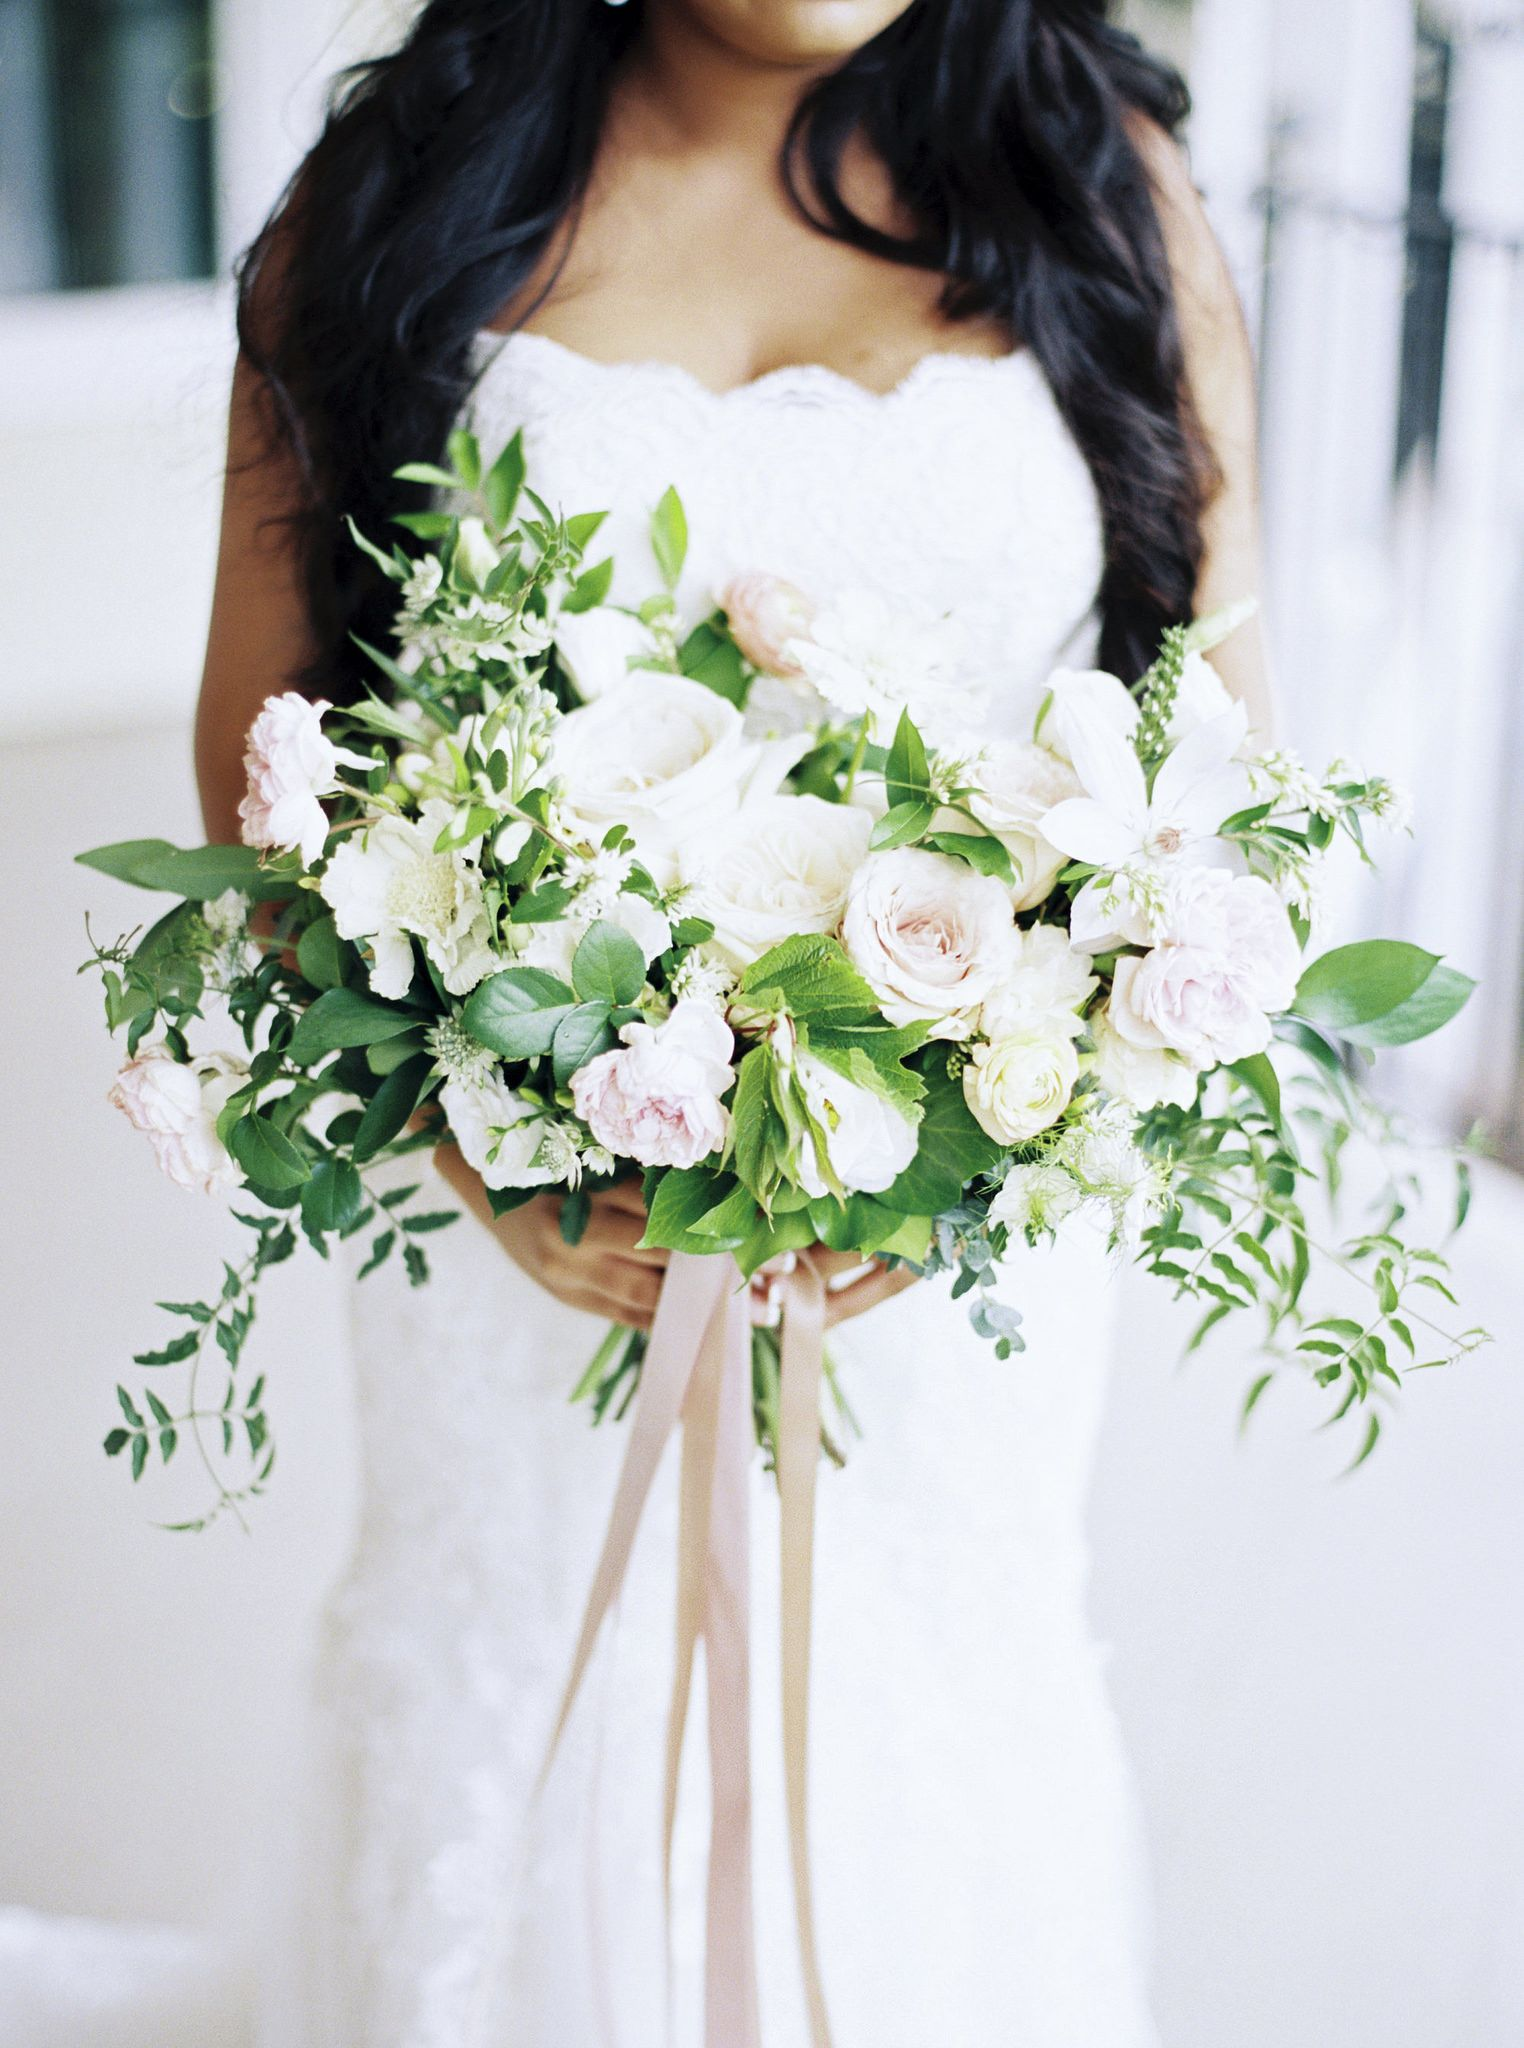 Main bridal bouquet inspiration! I love the floral varieties, delicate greens and palette - however I would like it to be slightly more round than oval in shape.